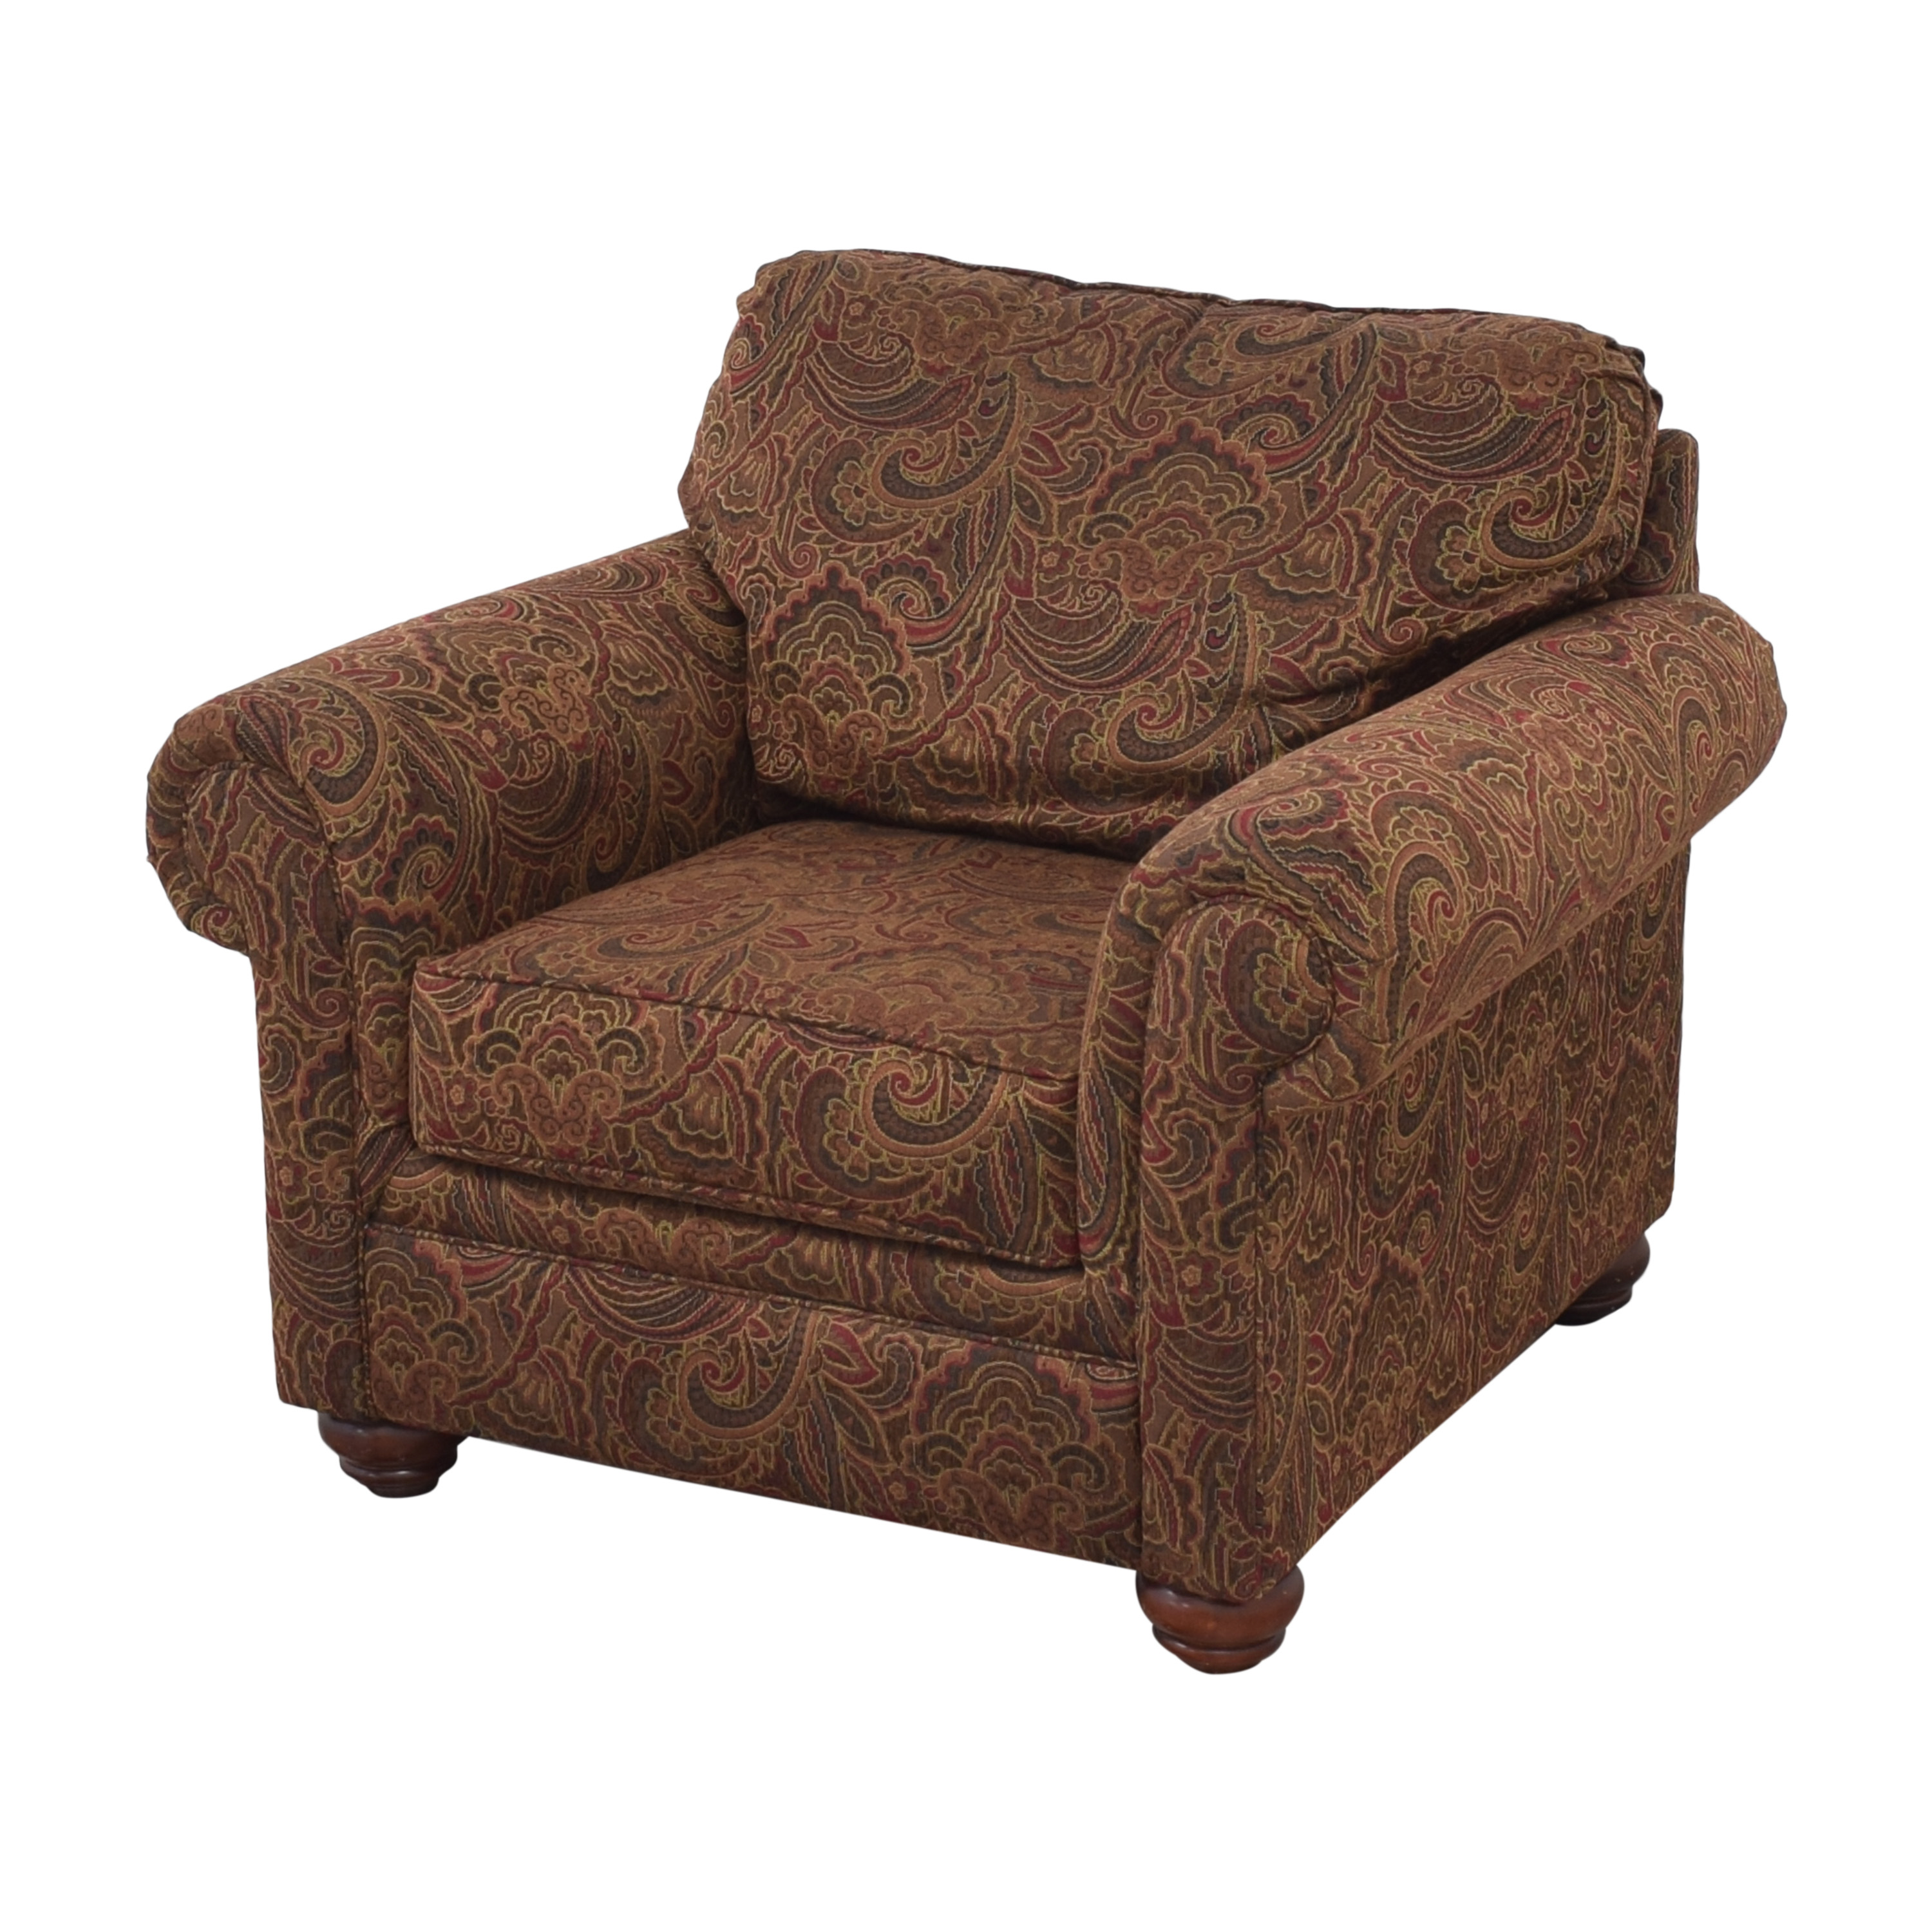 Broyhill Furniture Roll Arm Accent Chair and Ottoman Broyhill Furniture